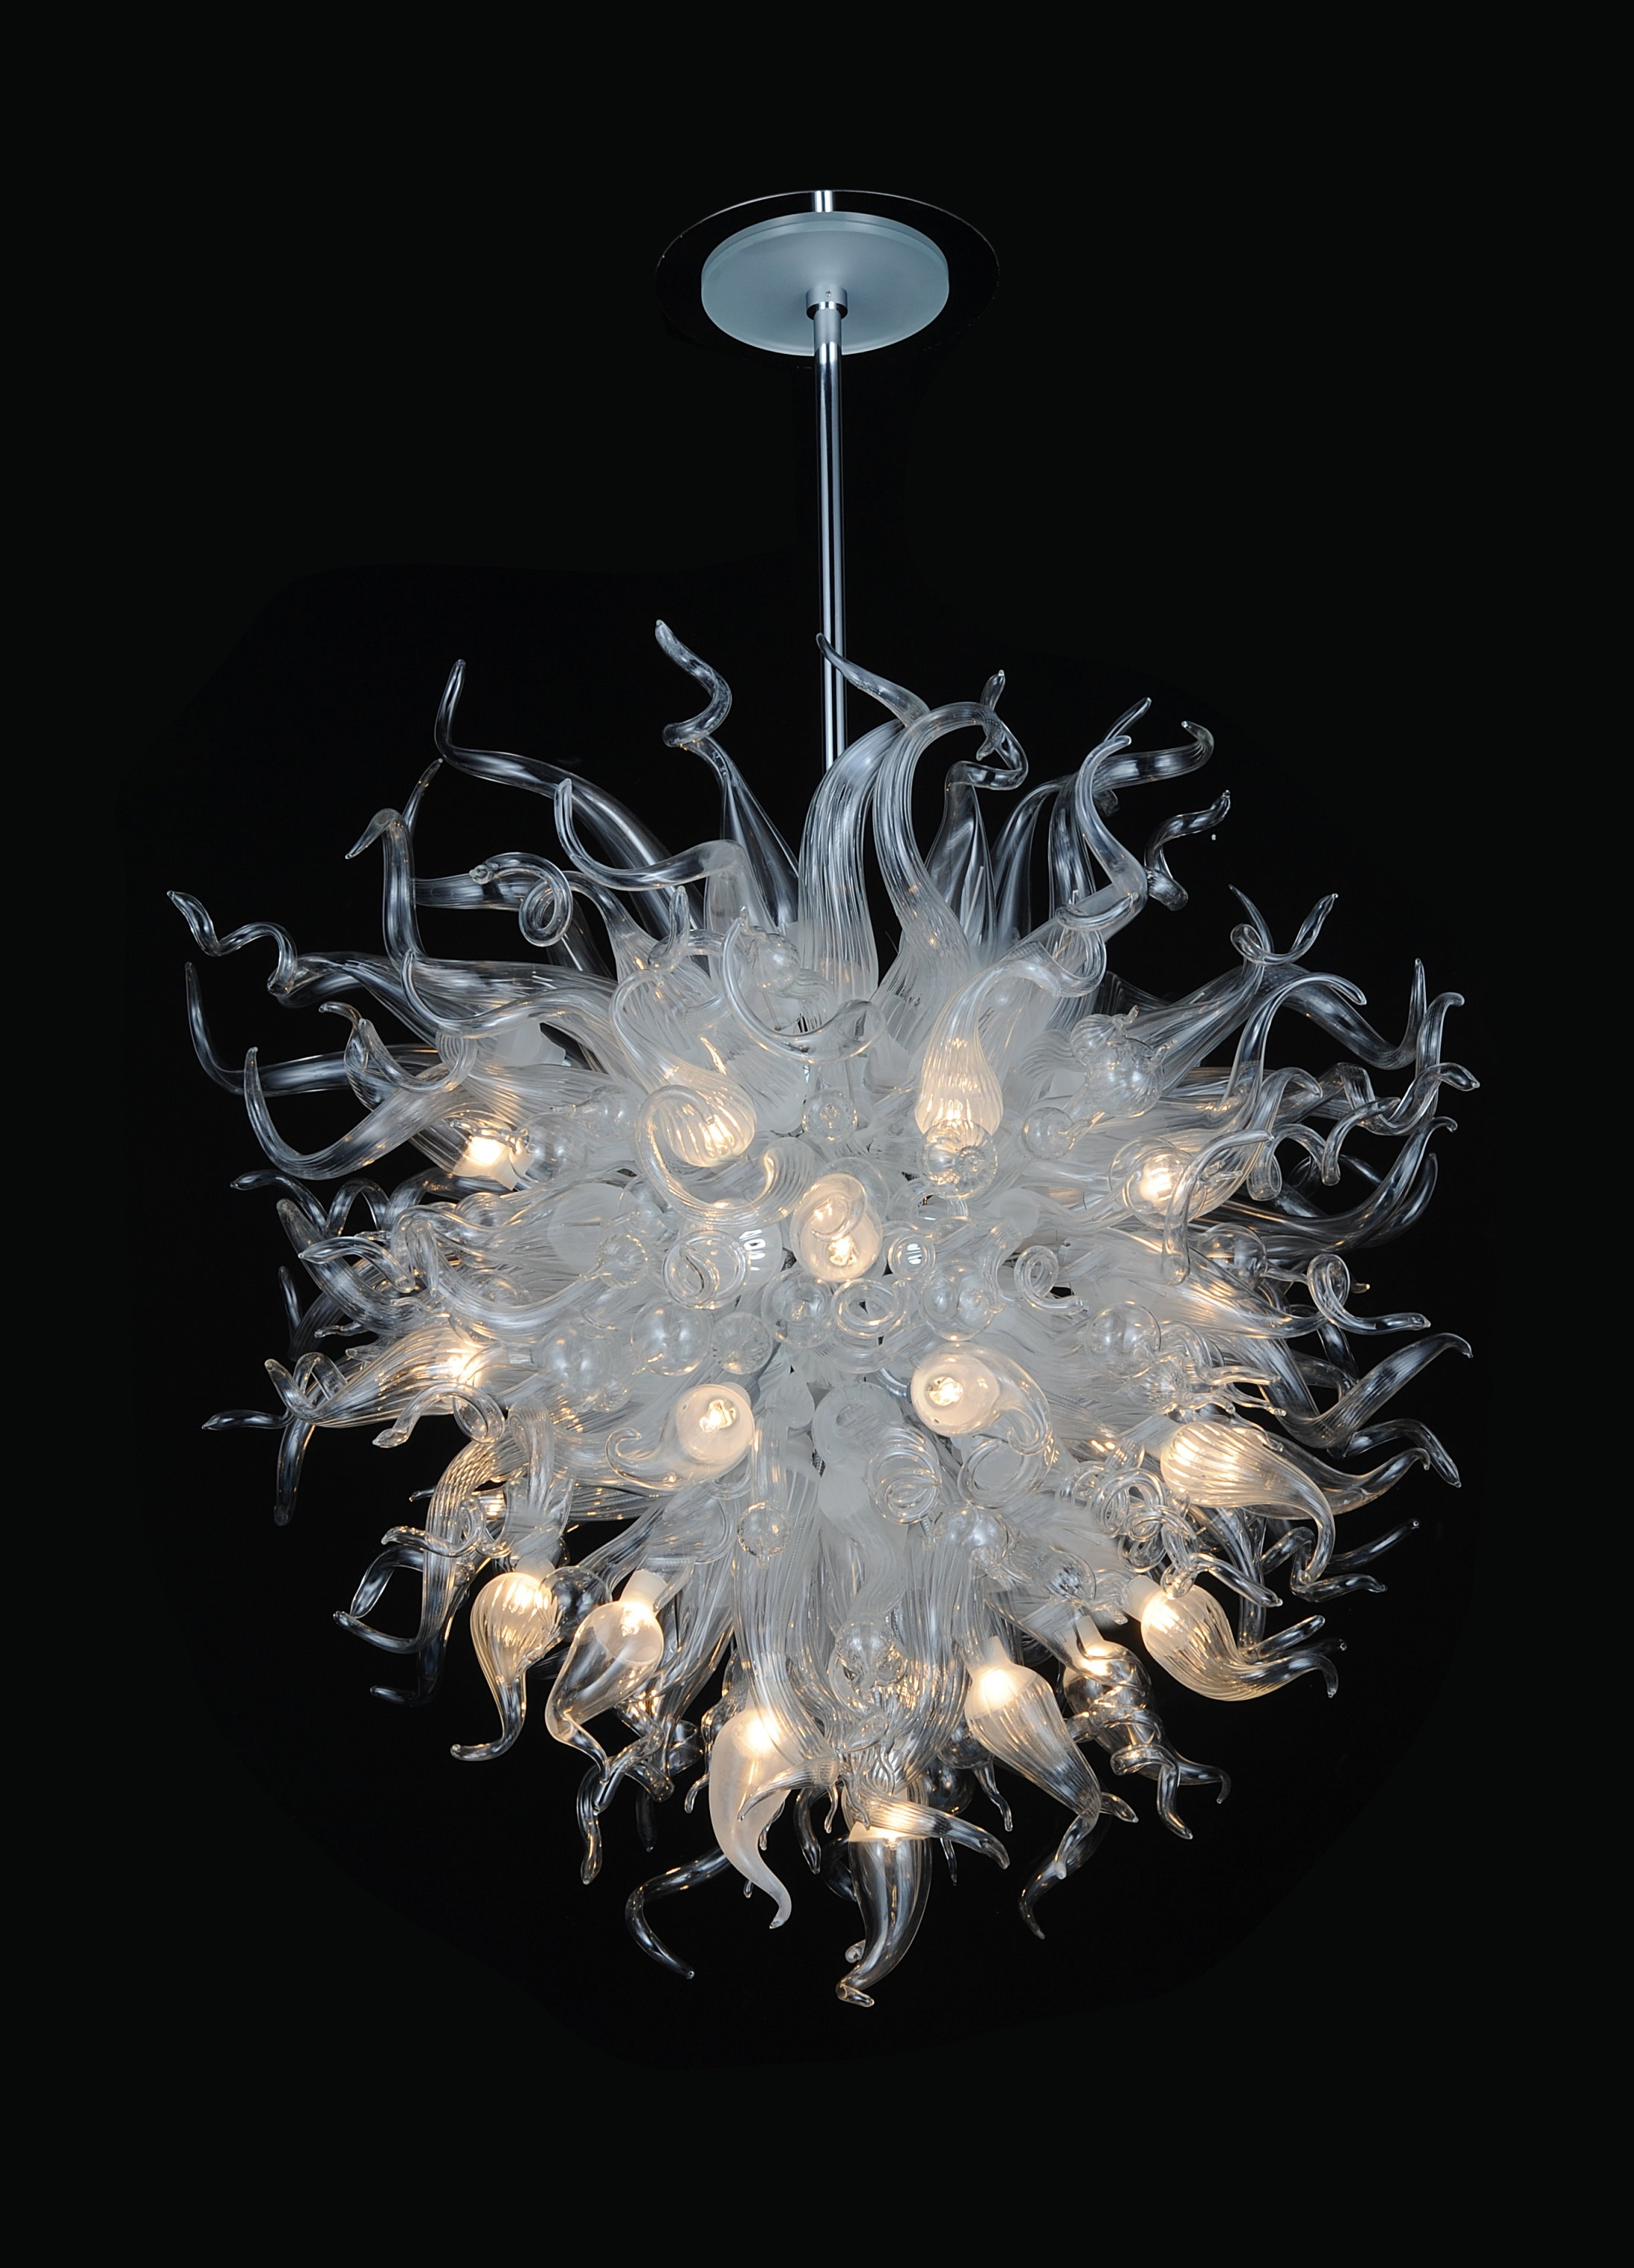 Modern Glass Chandeliers Throughout Italian Chandeliers Contemporary (Image 12 of 15)